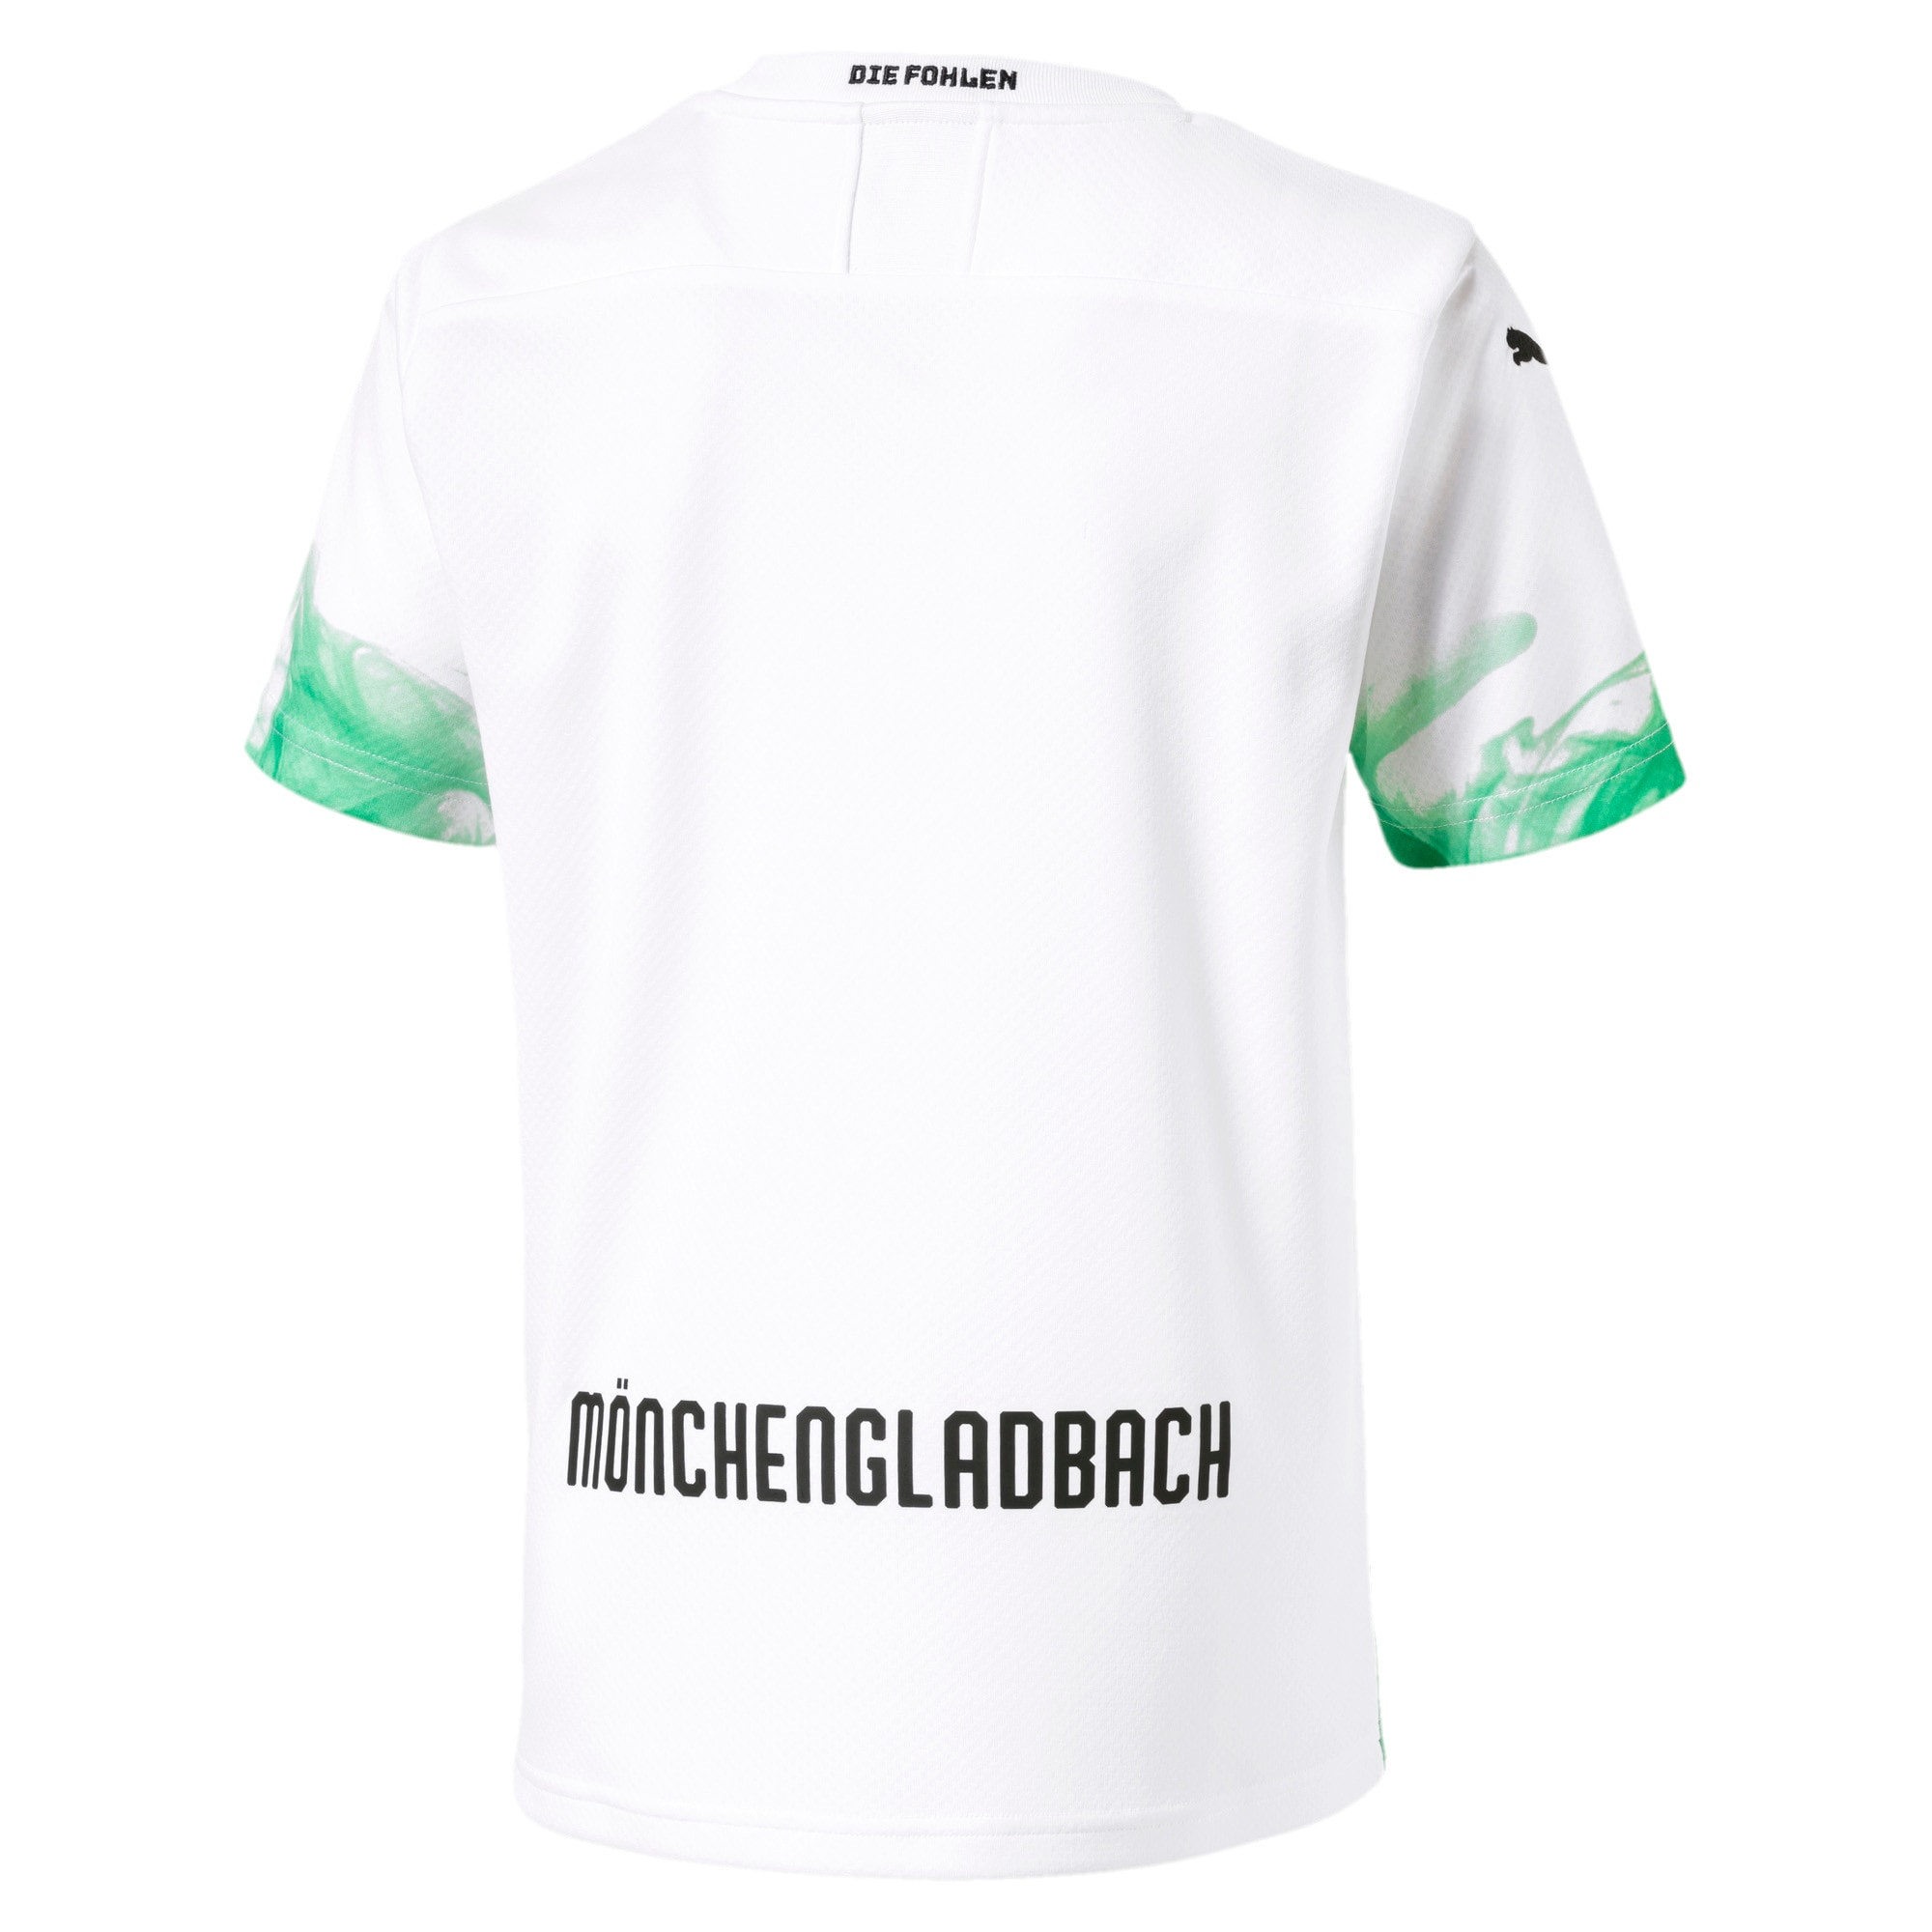 Thumbnail 2 of Borussia Mönchengladbach Kids' Home Replica Jersey, Puma White-Bright Green, medium